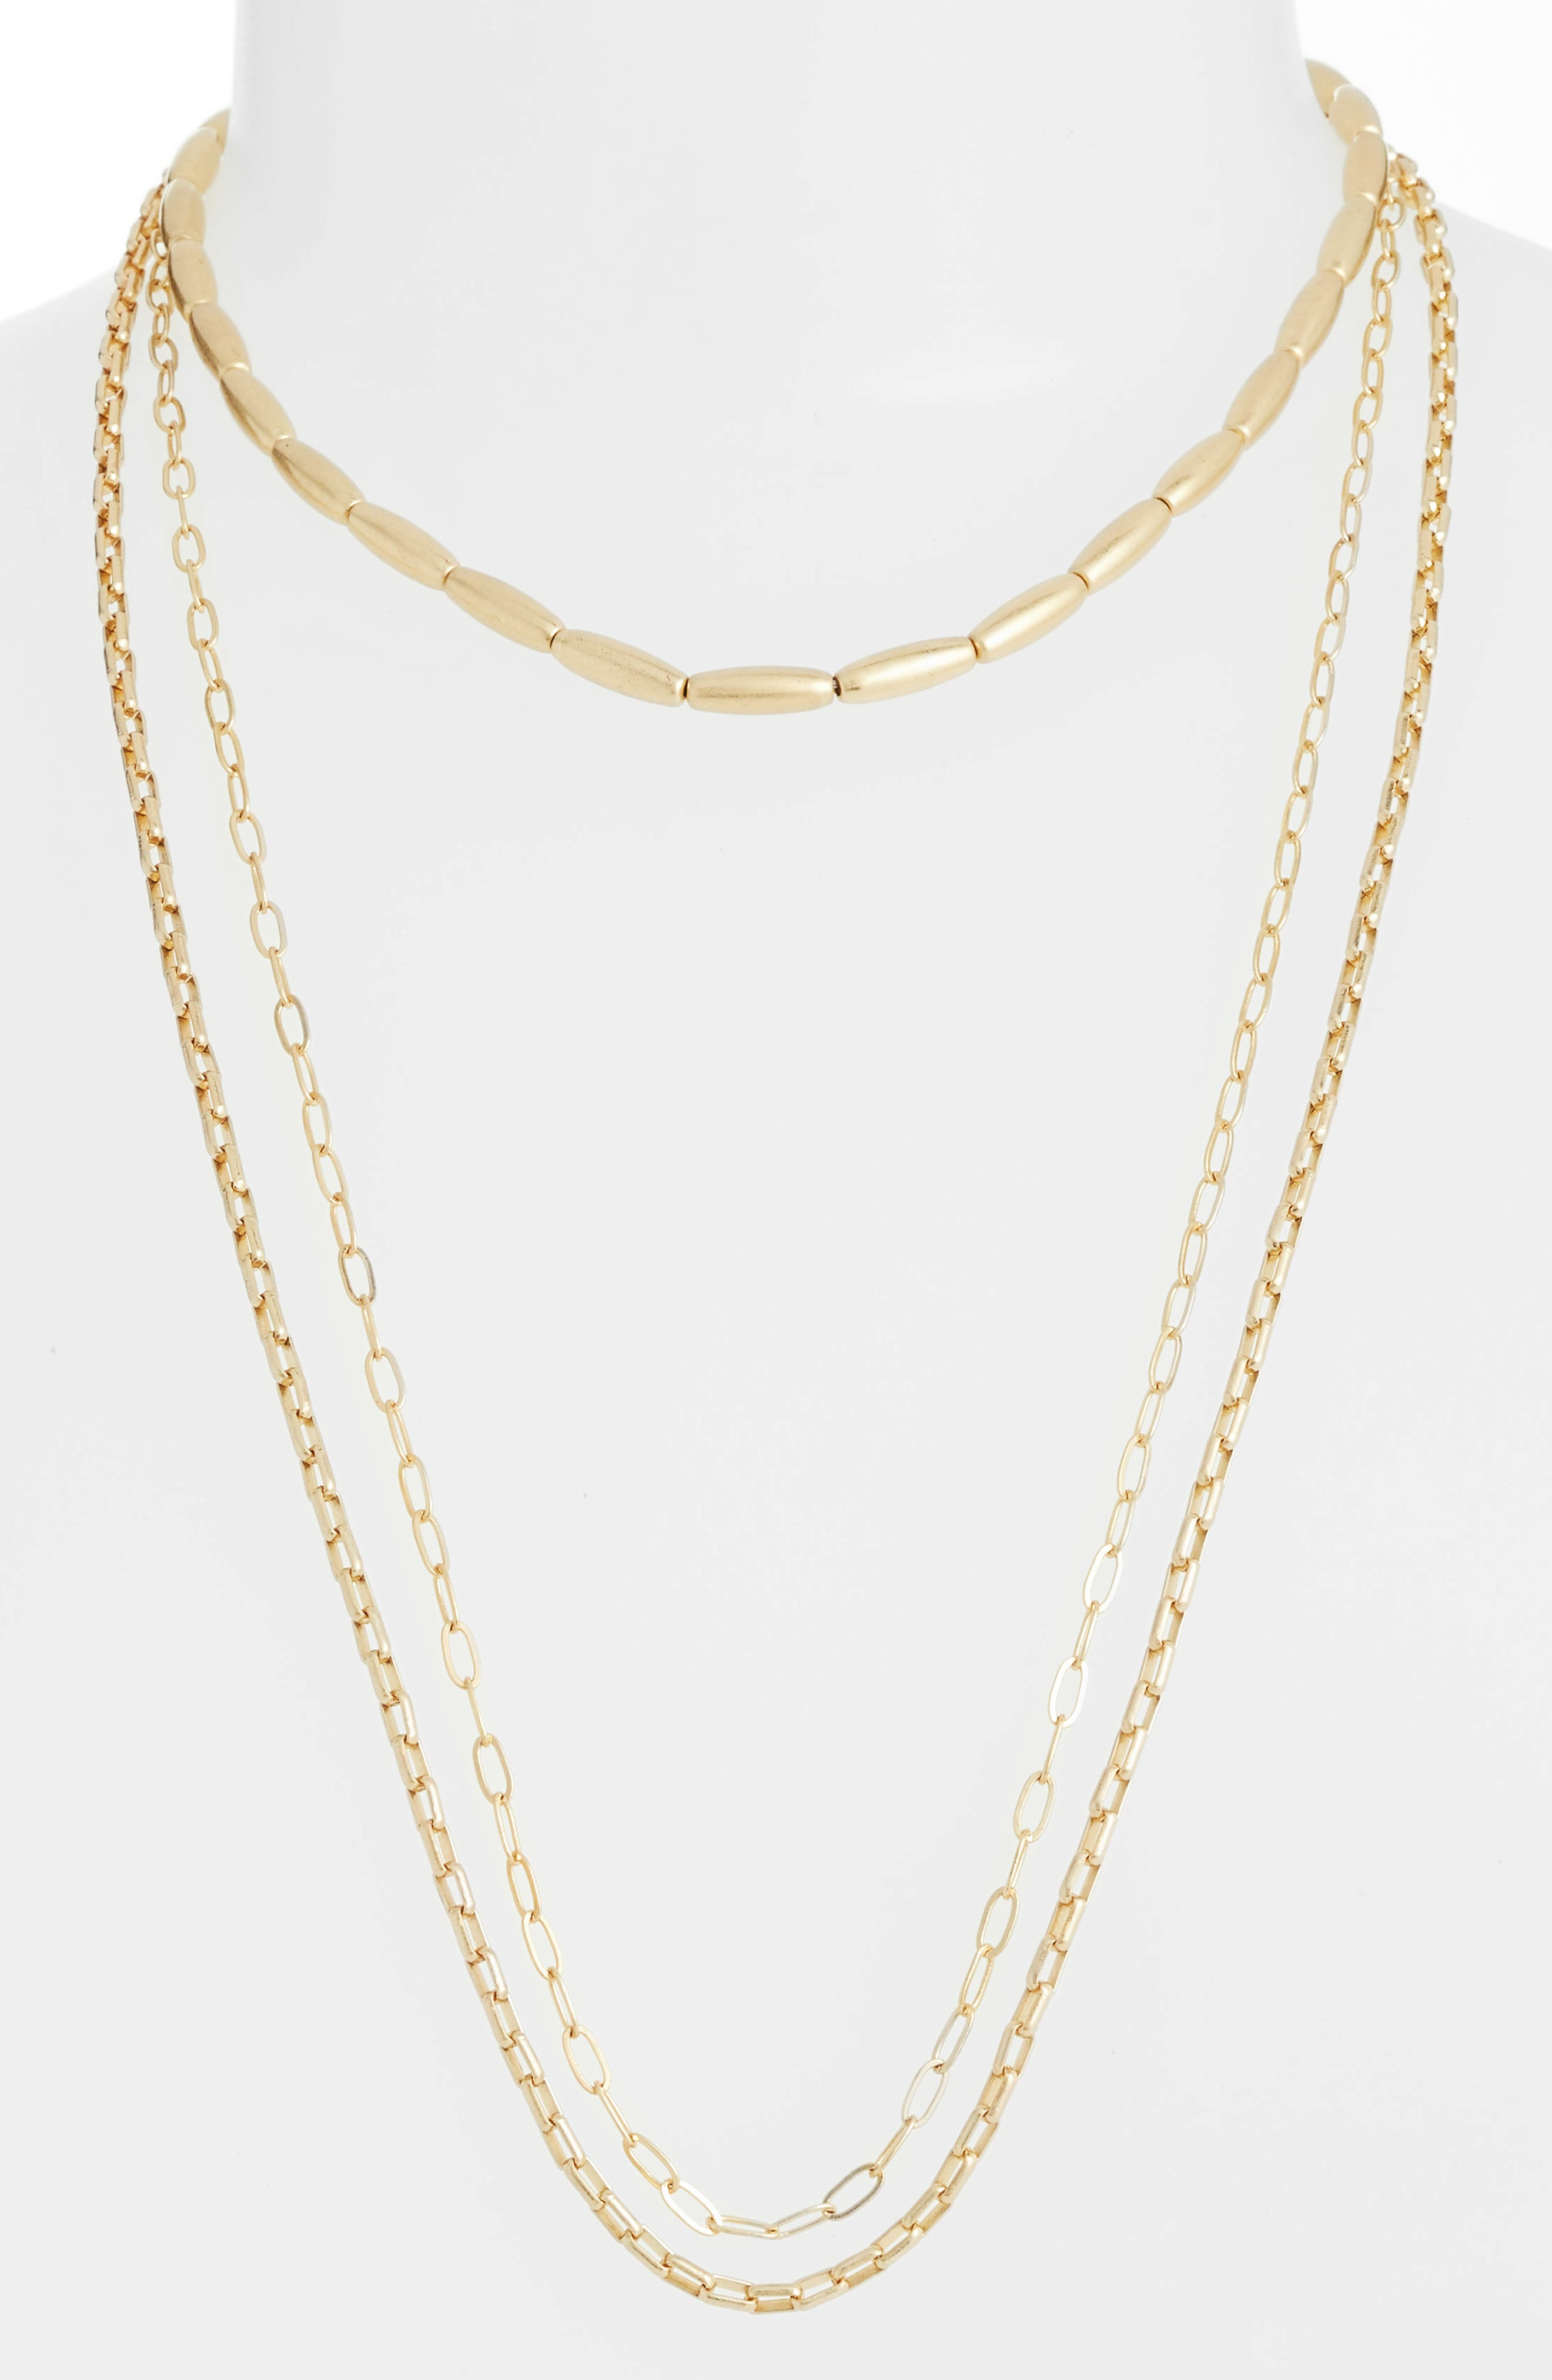 Sadie Strands Layered Necklace,                         Main,                         color, Gold